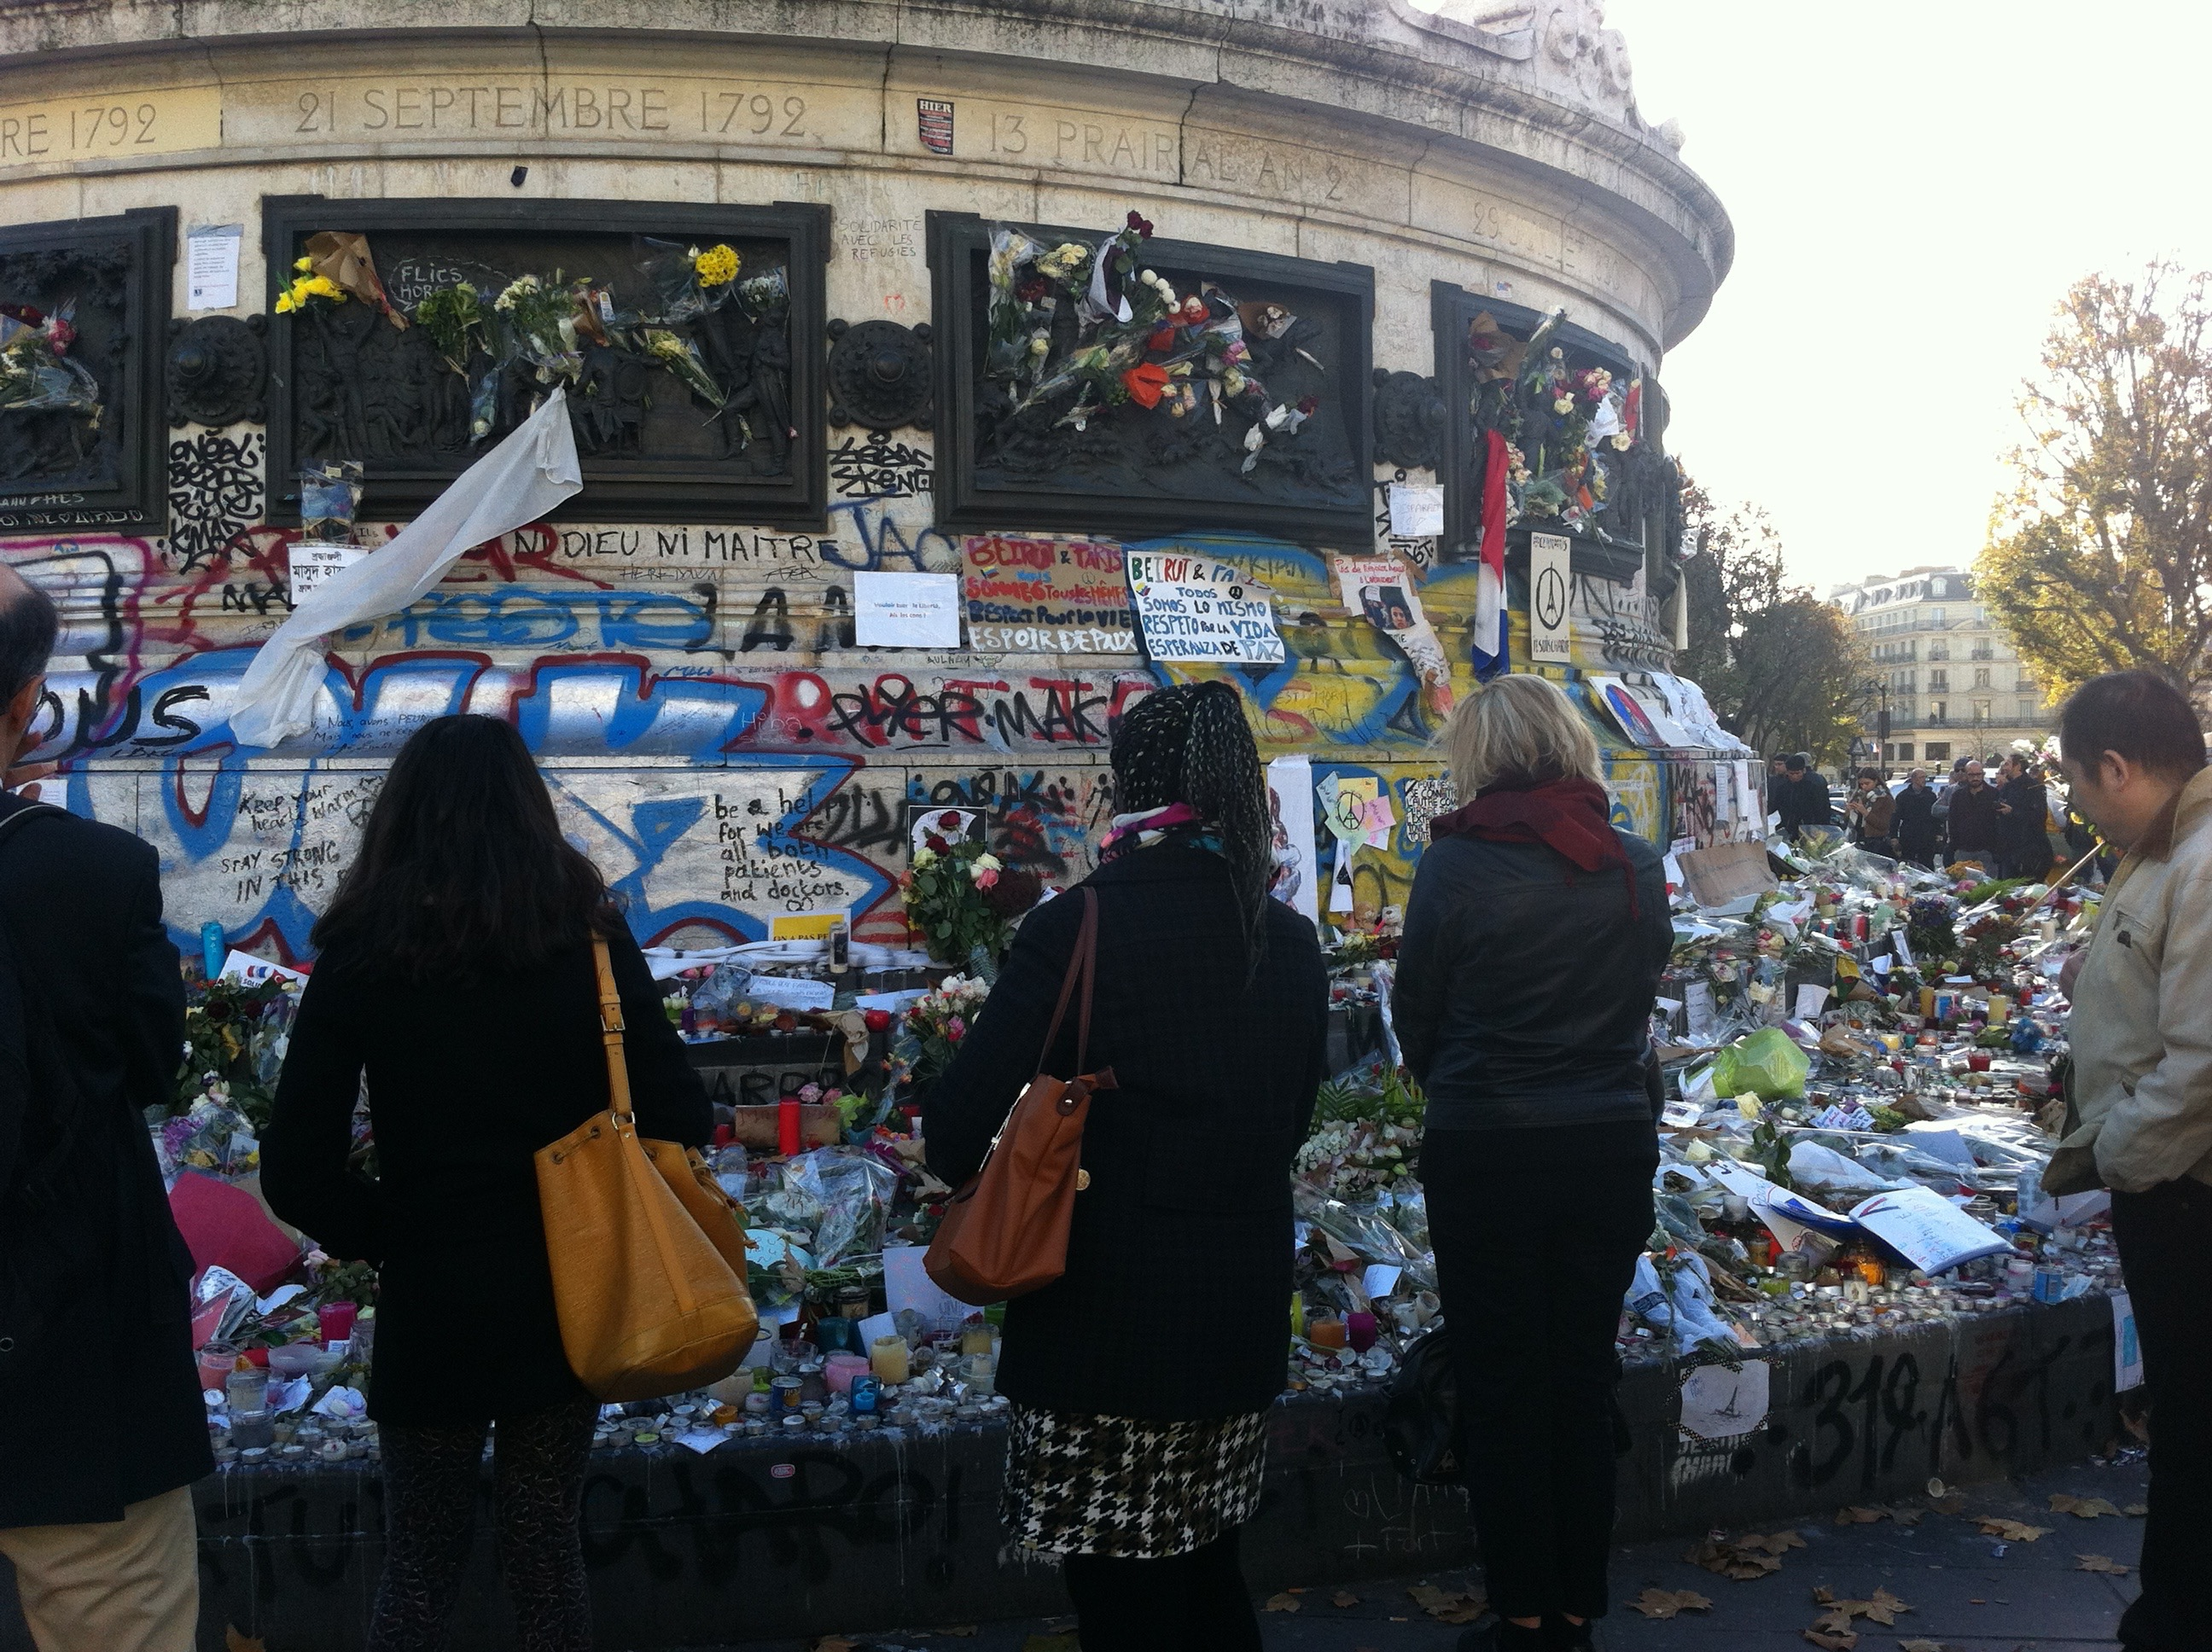 Memorial flowers and notes amass at Place de la Republique after the Nov. 13 attacks.